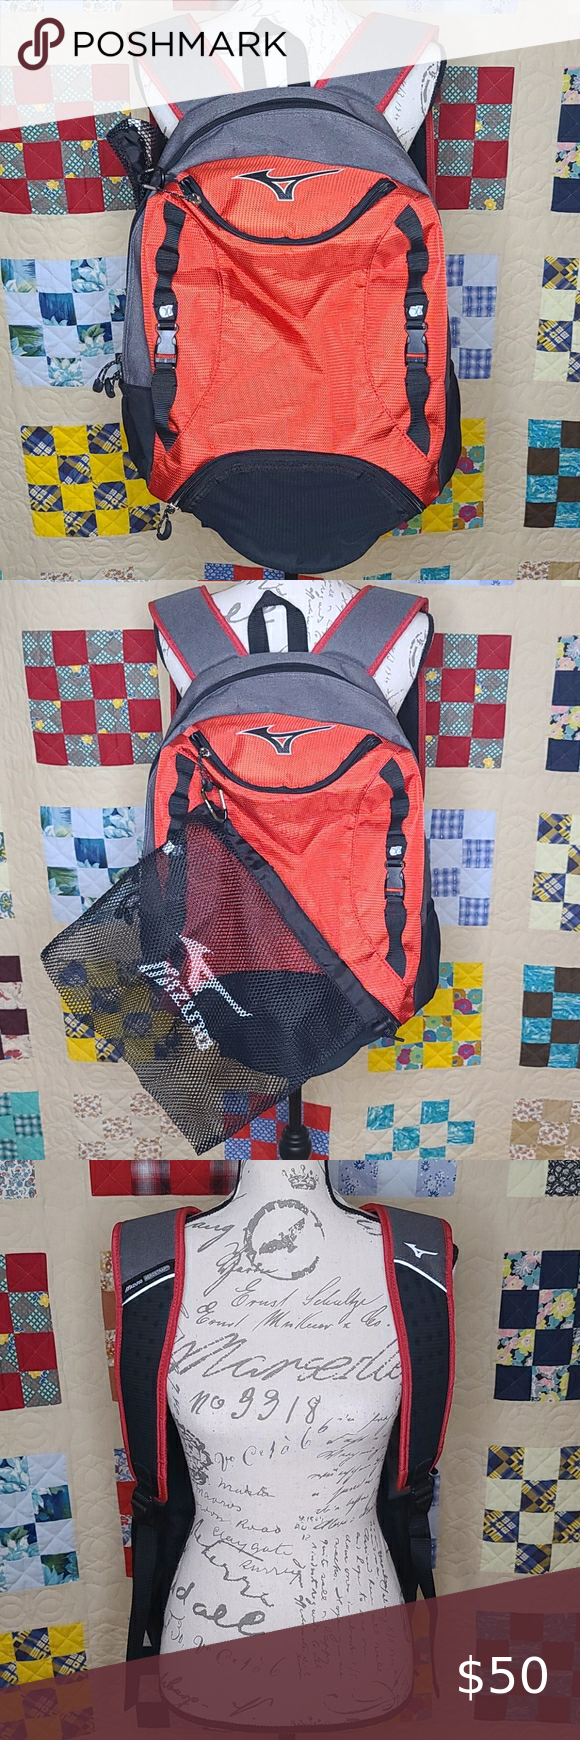 Mizuno Lightning Volleyball Backpack Never Used In 2020 Clothes Design Mizuno Designer Backpacks